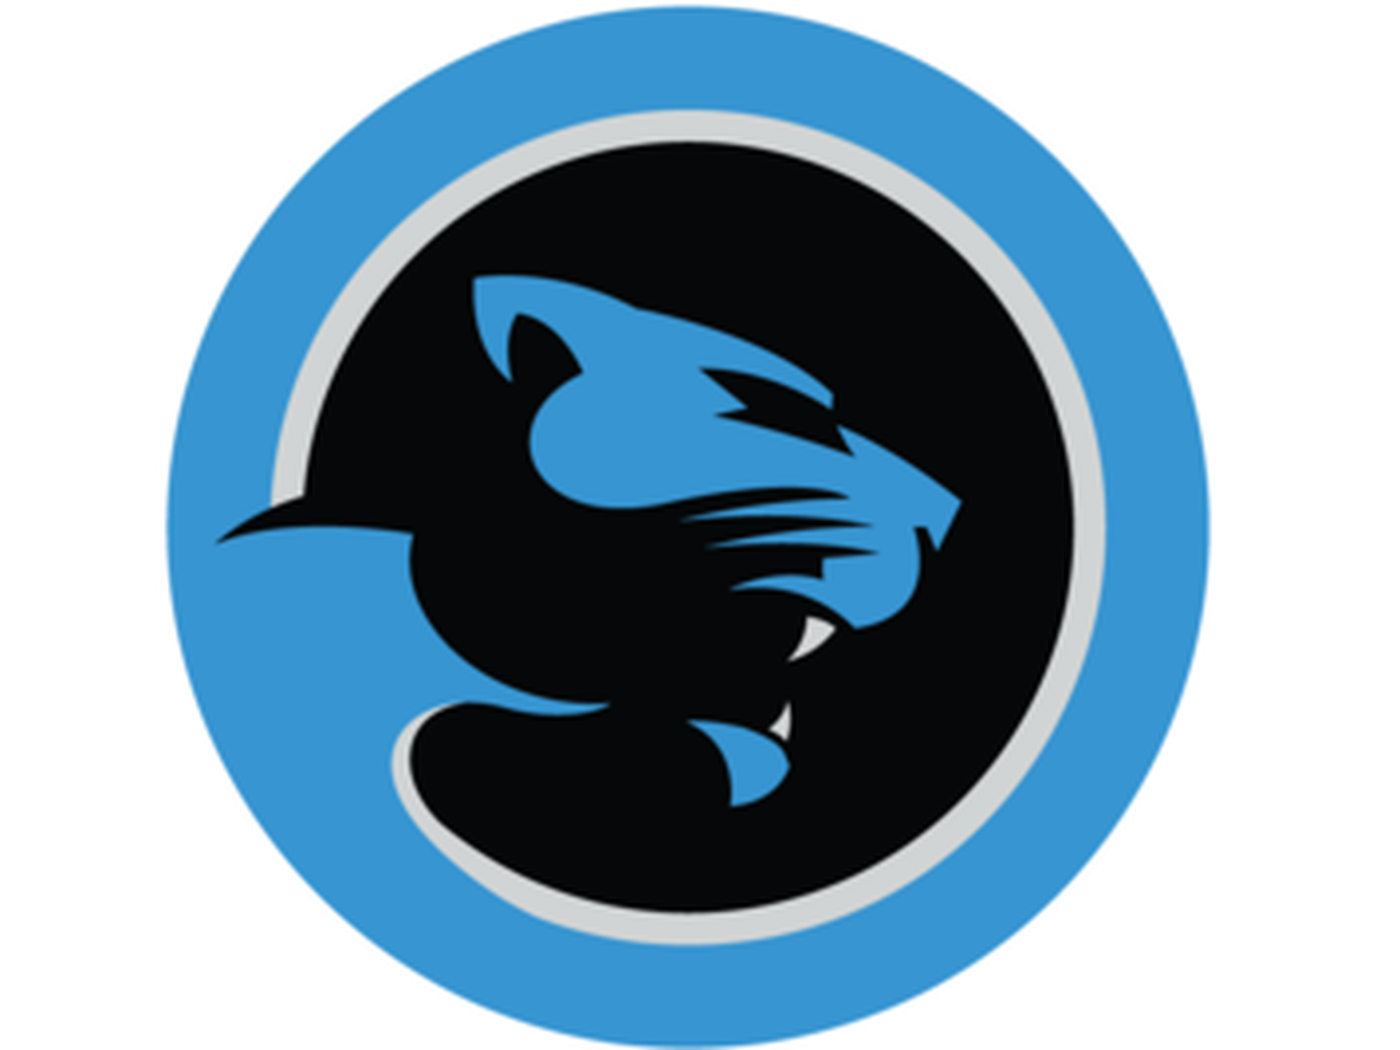 Carolina panther logo png. Reactions to the new